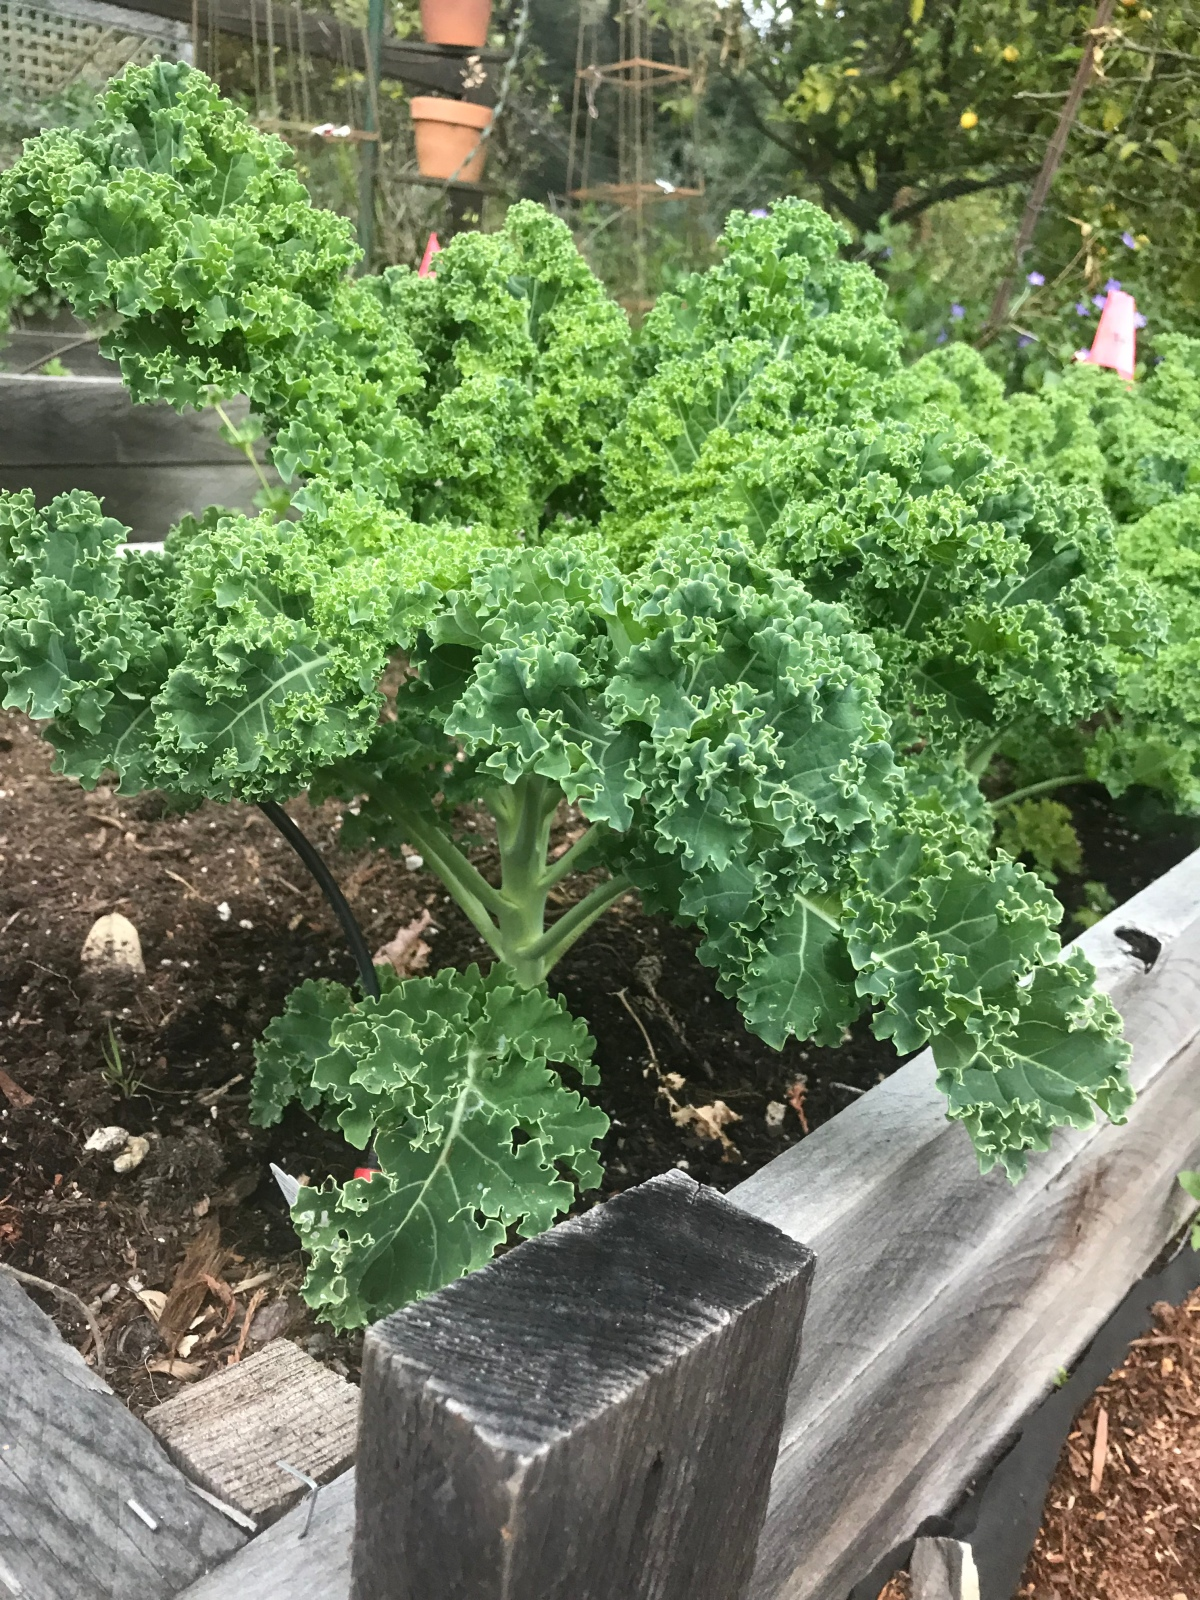 Our Vegetable Garden 2019